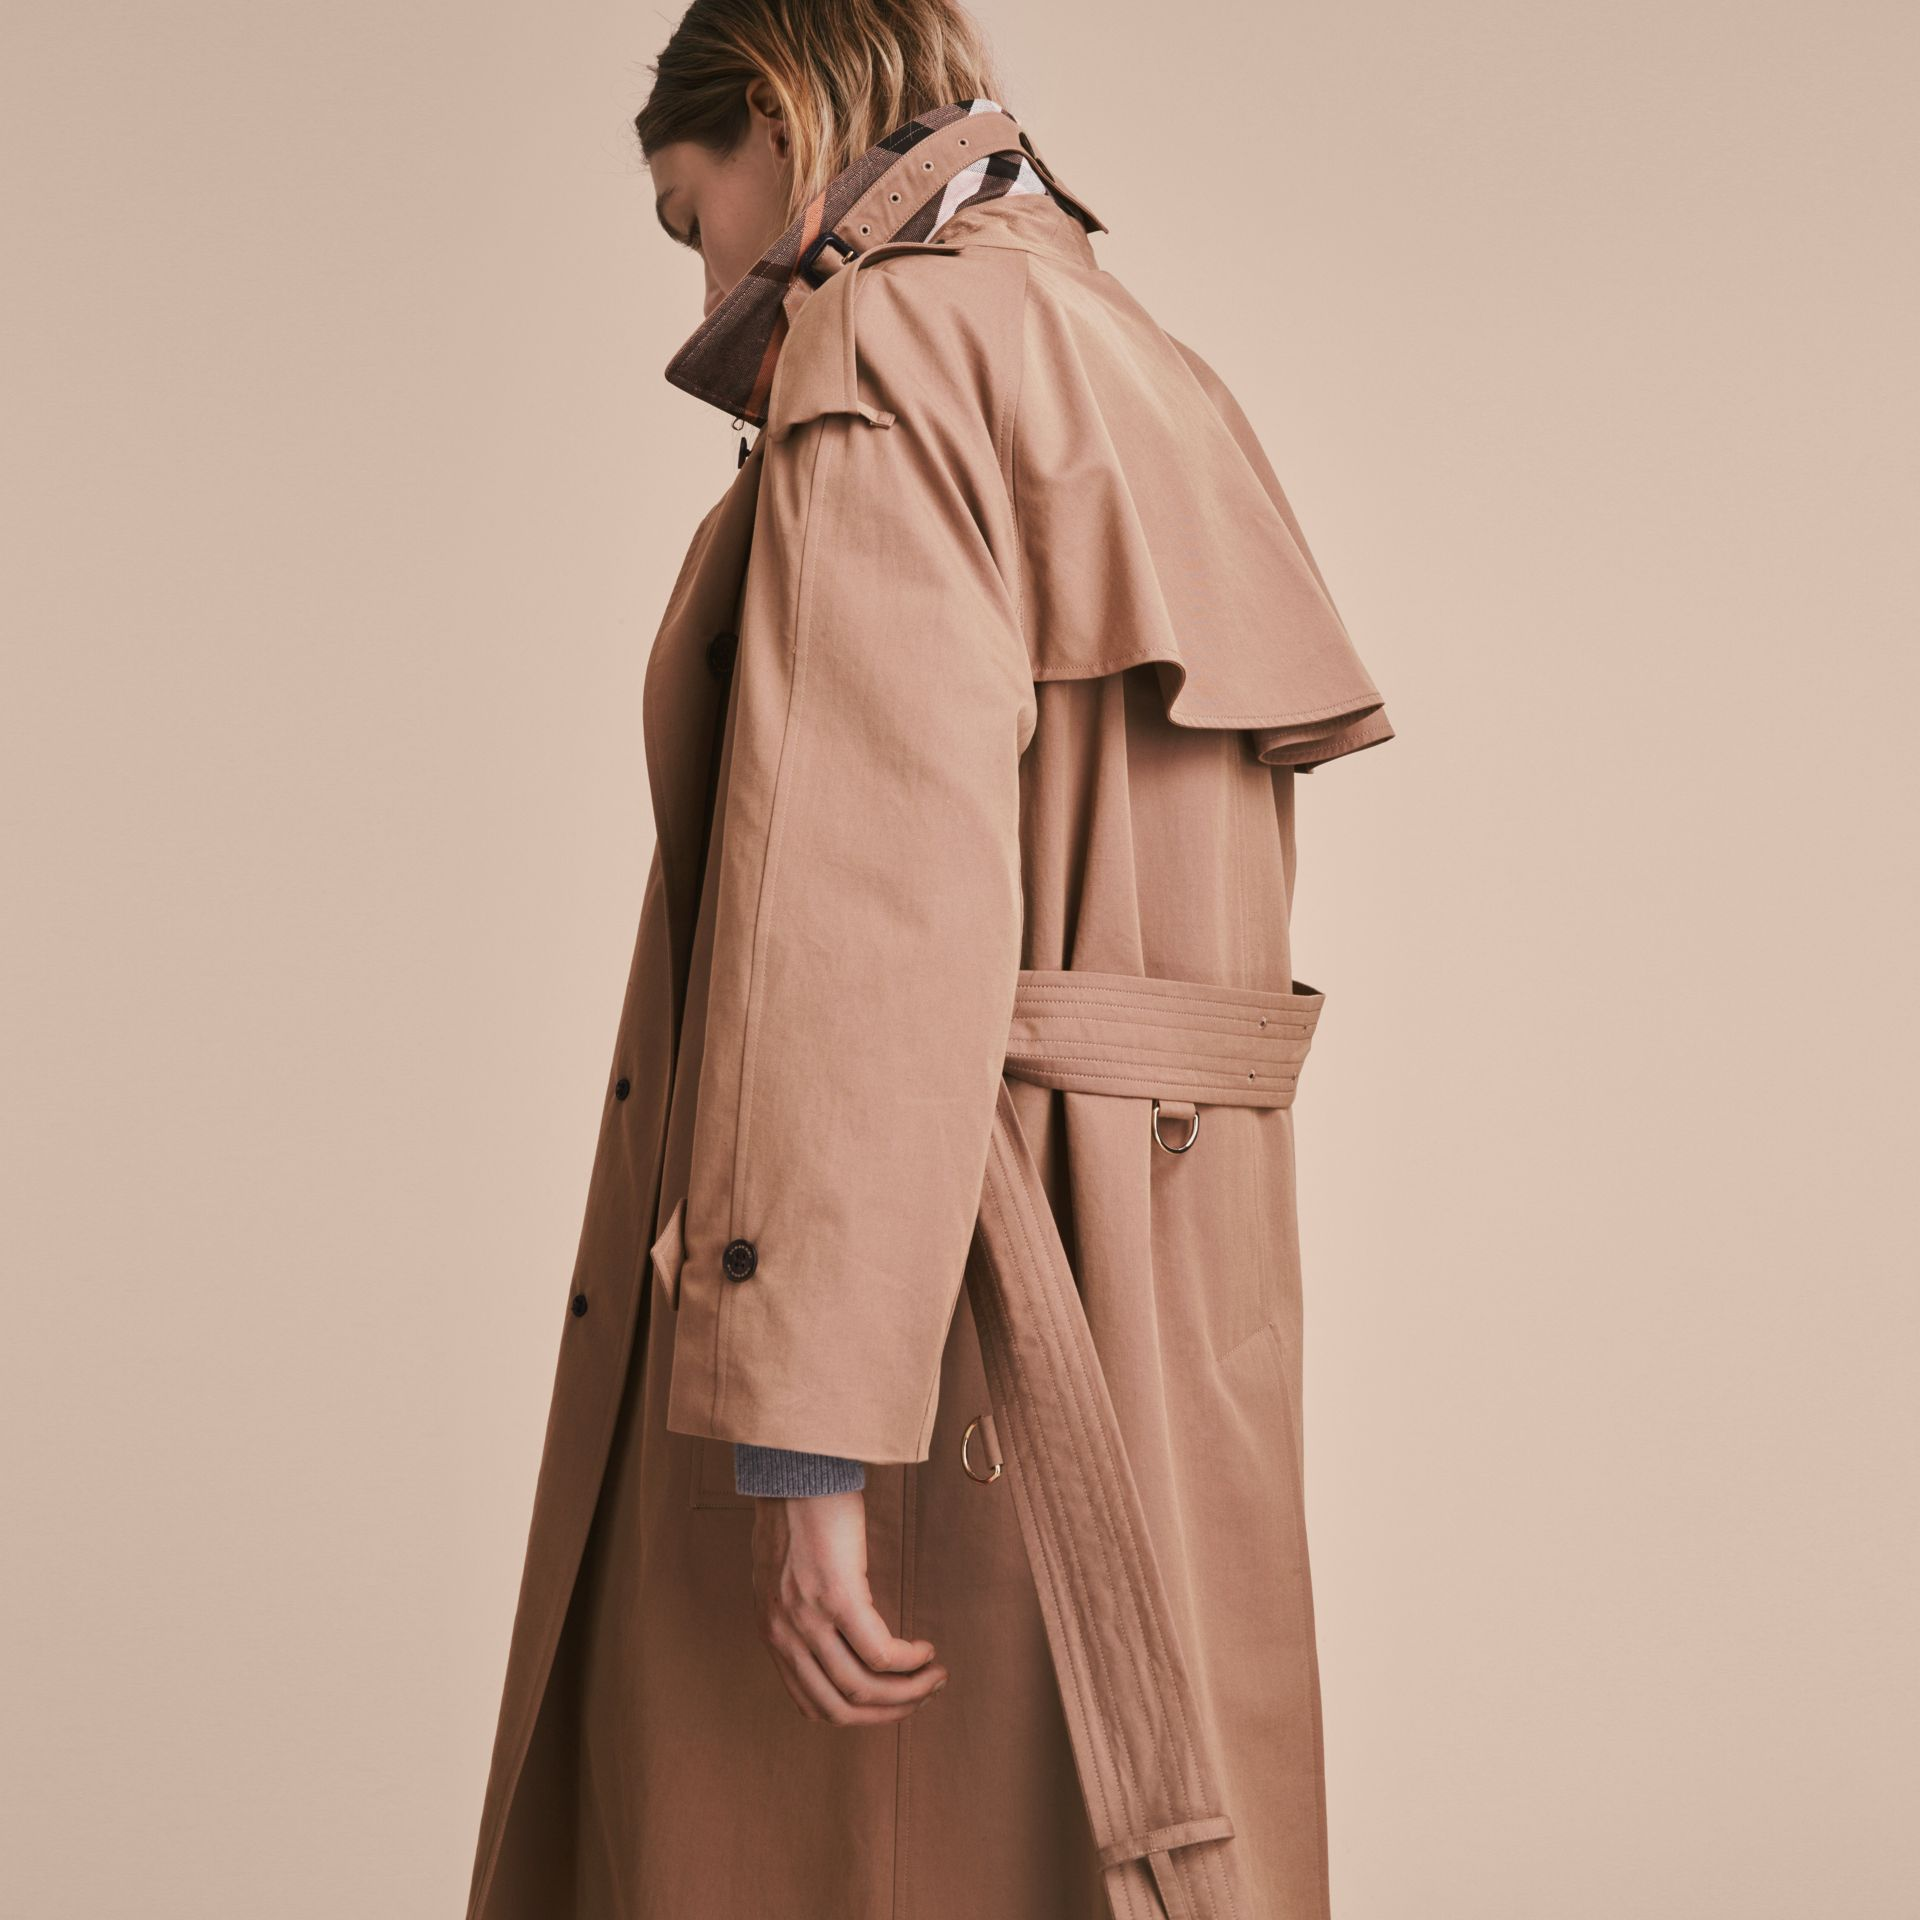 Tropical Gabardine Trench Coat in Taupe - Women | Burberry United States - gallery image 5